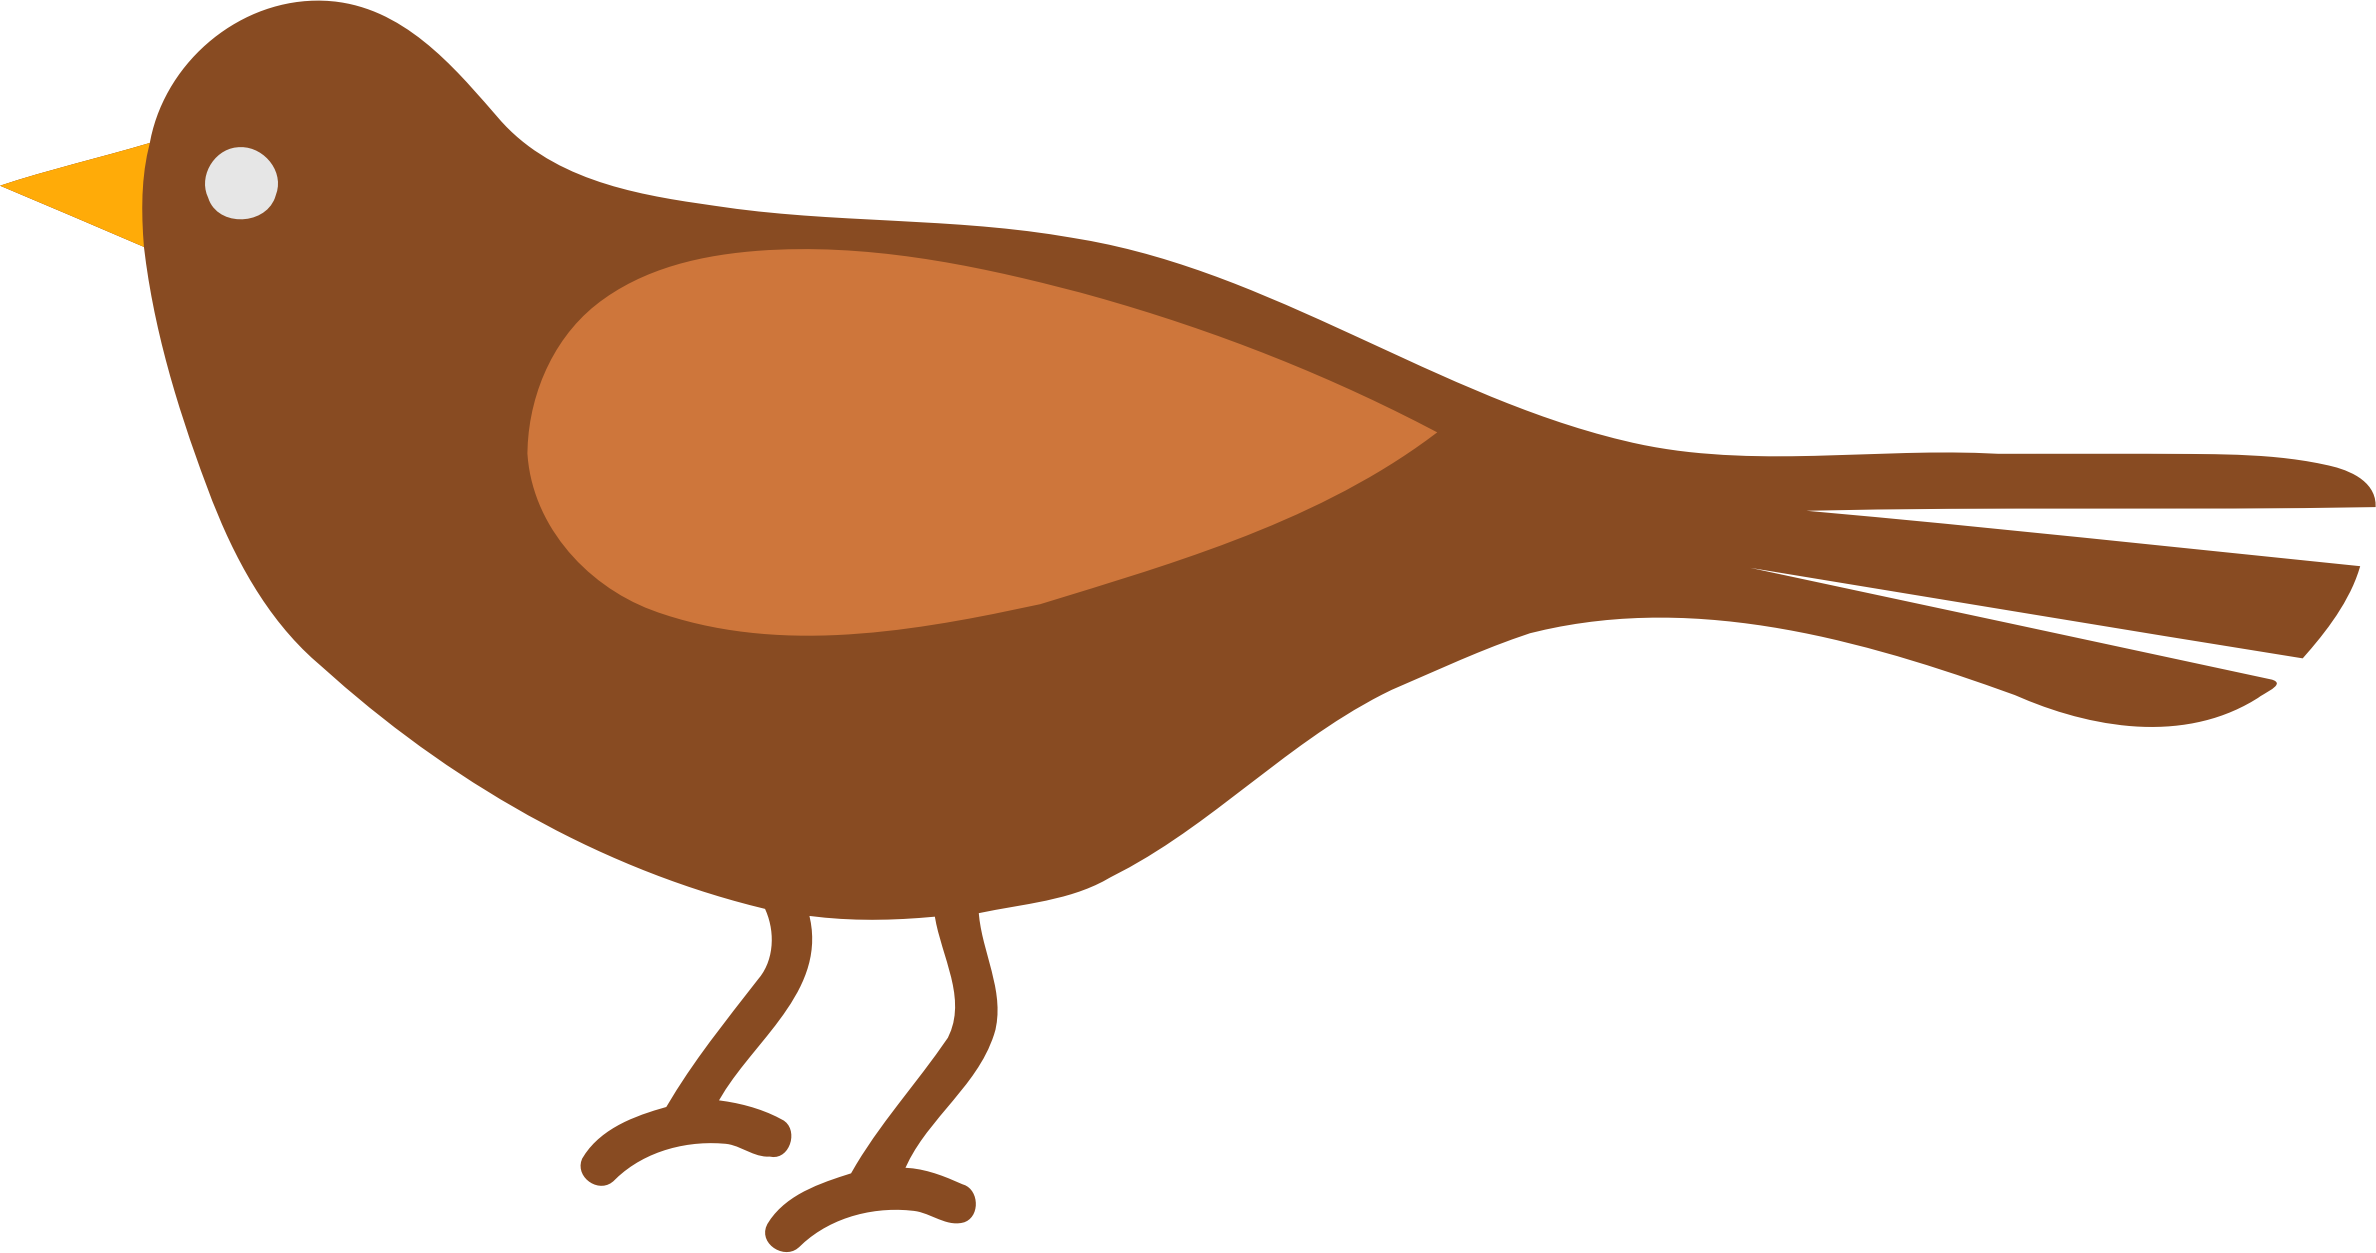 Big Image - Simple Bird Clipart - Png Download - Full Size ...